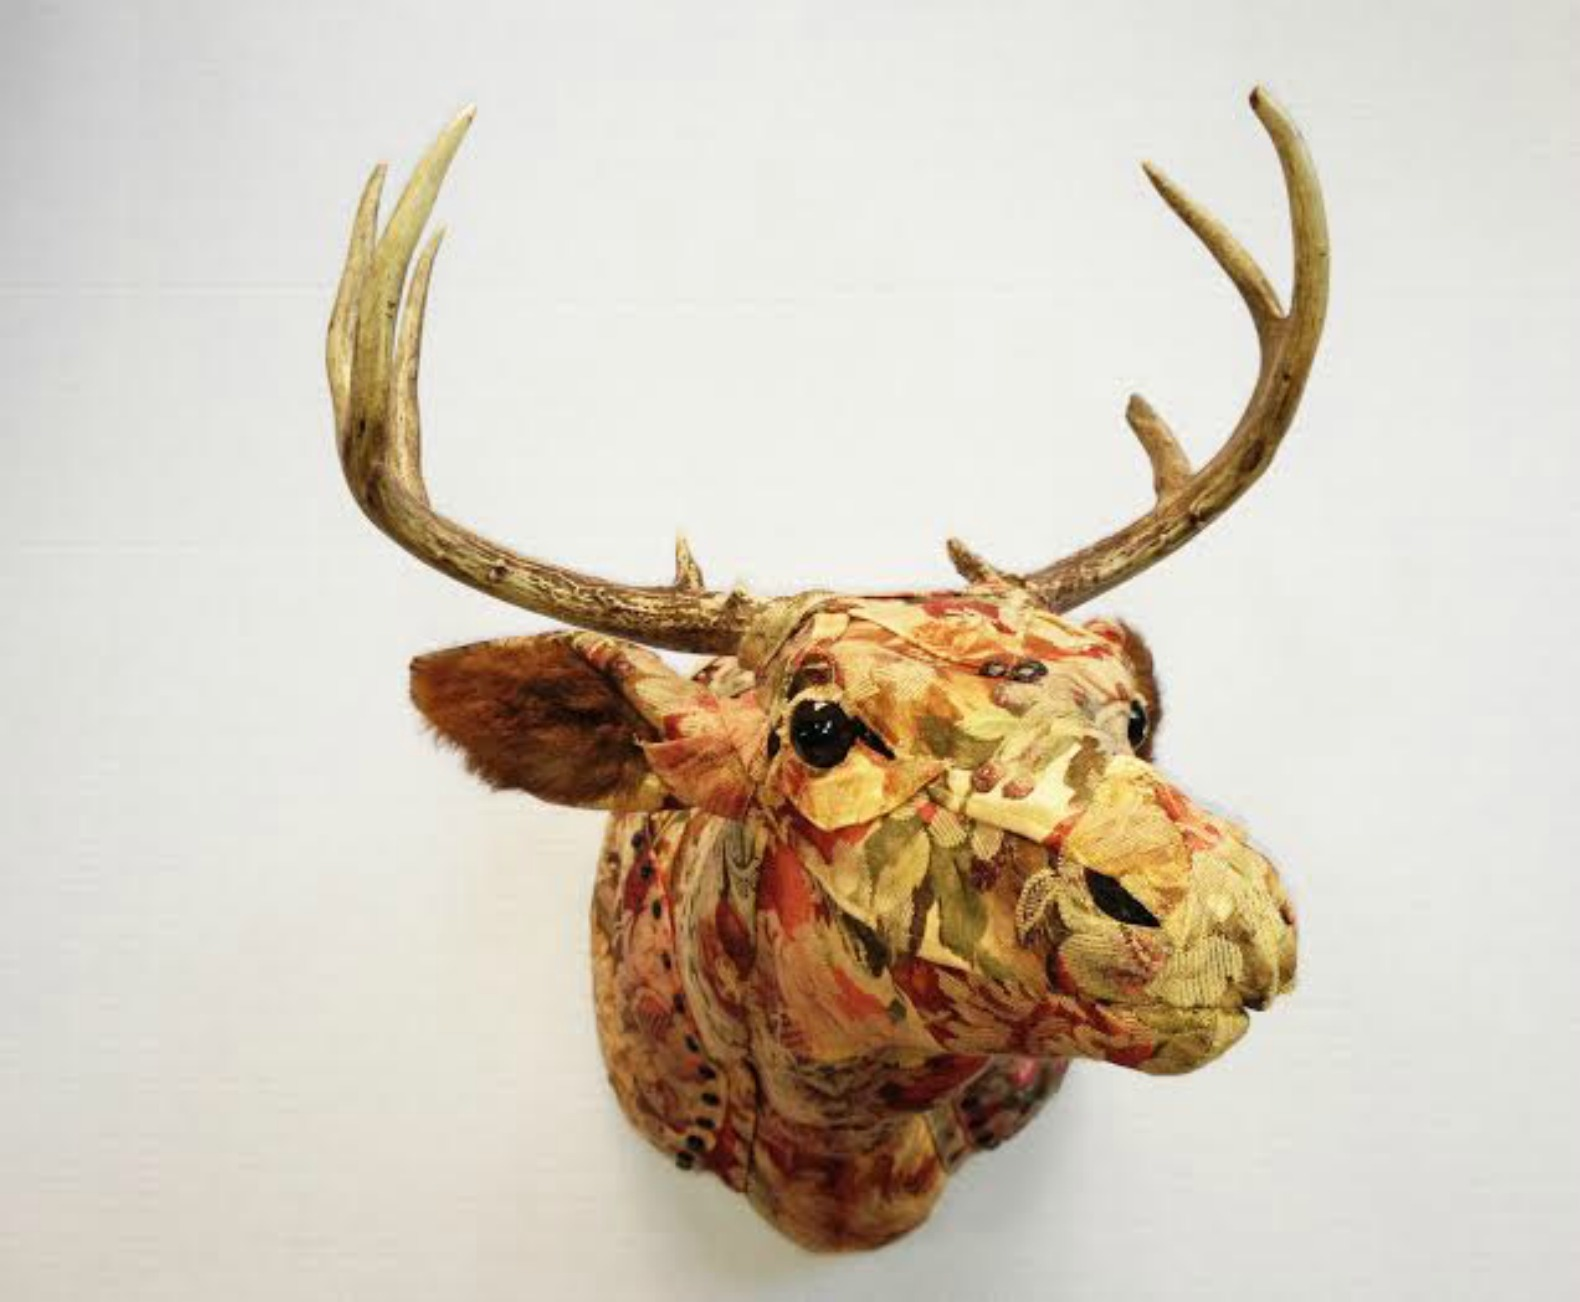 Artist Makes Life Sized Faux Taxidermy Animals From Upcycled Fabric Swatches